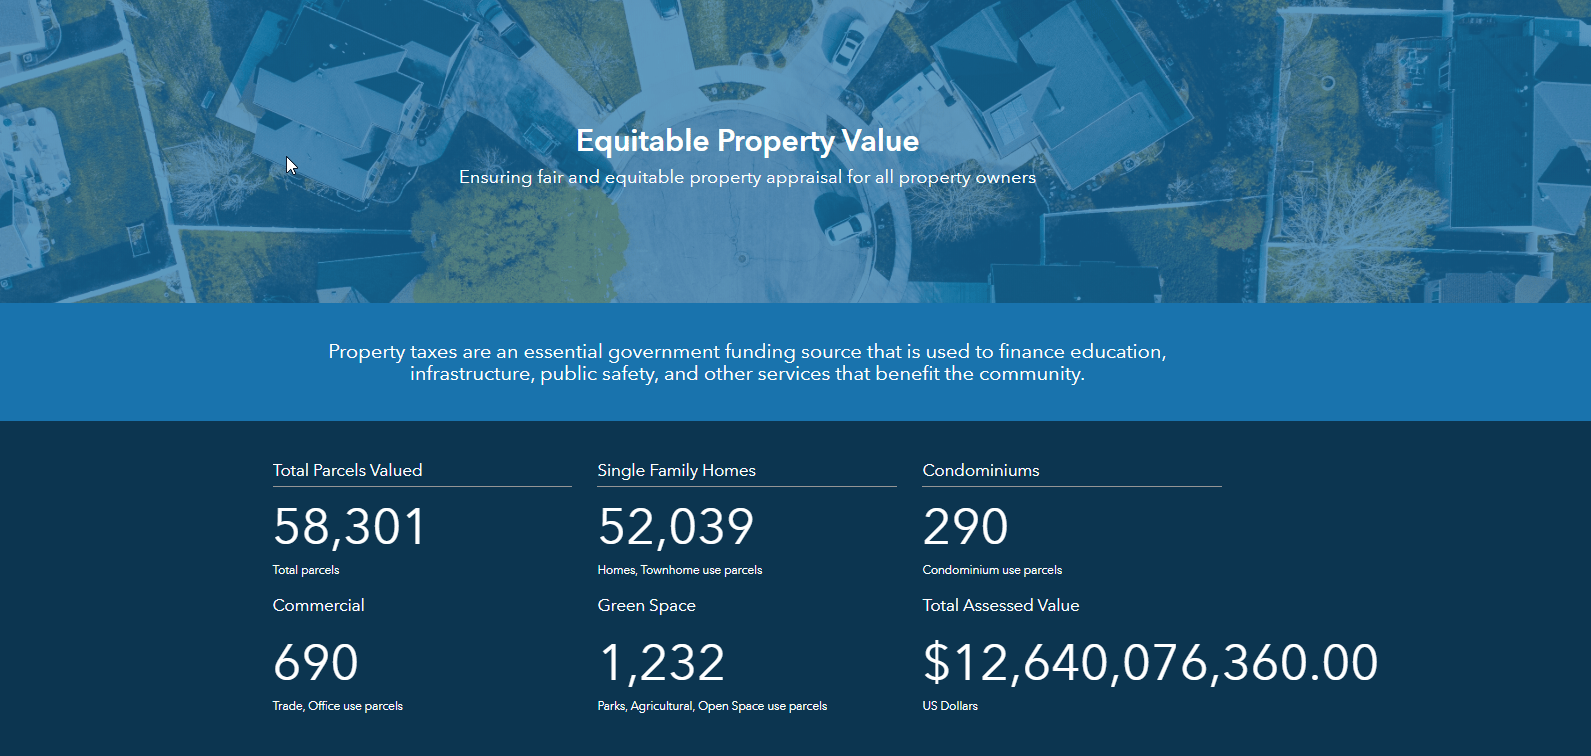 Equitable Property Value hub site